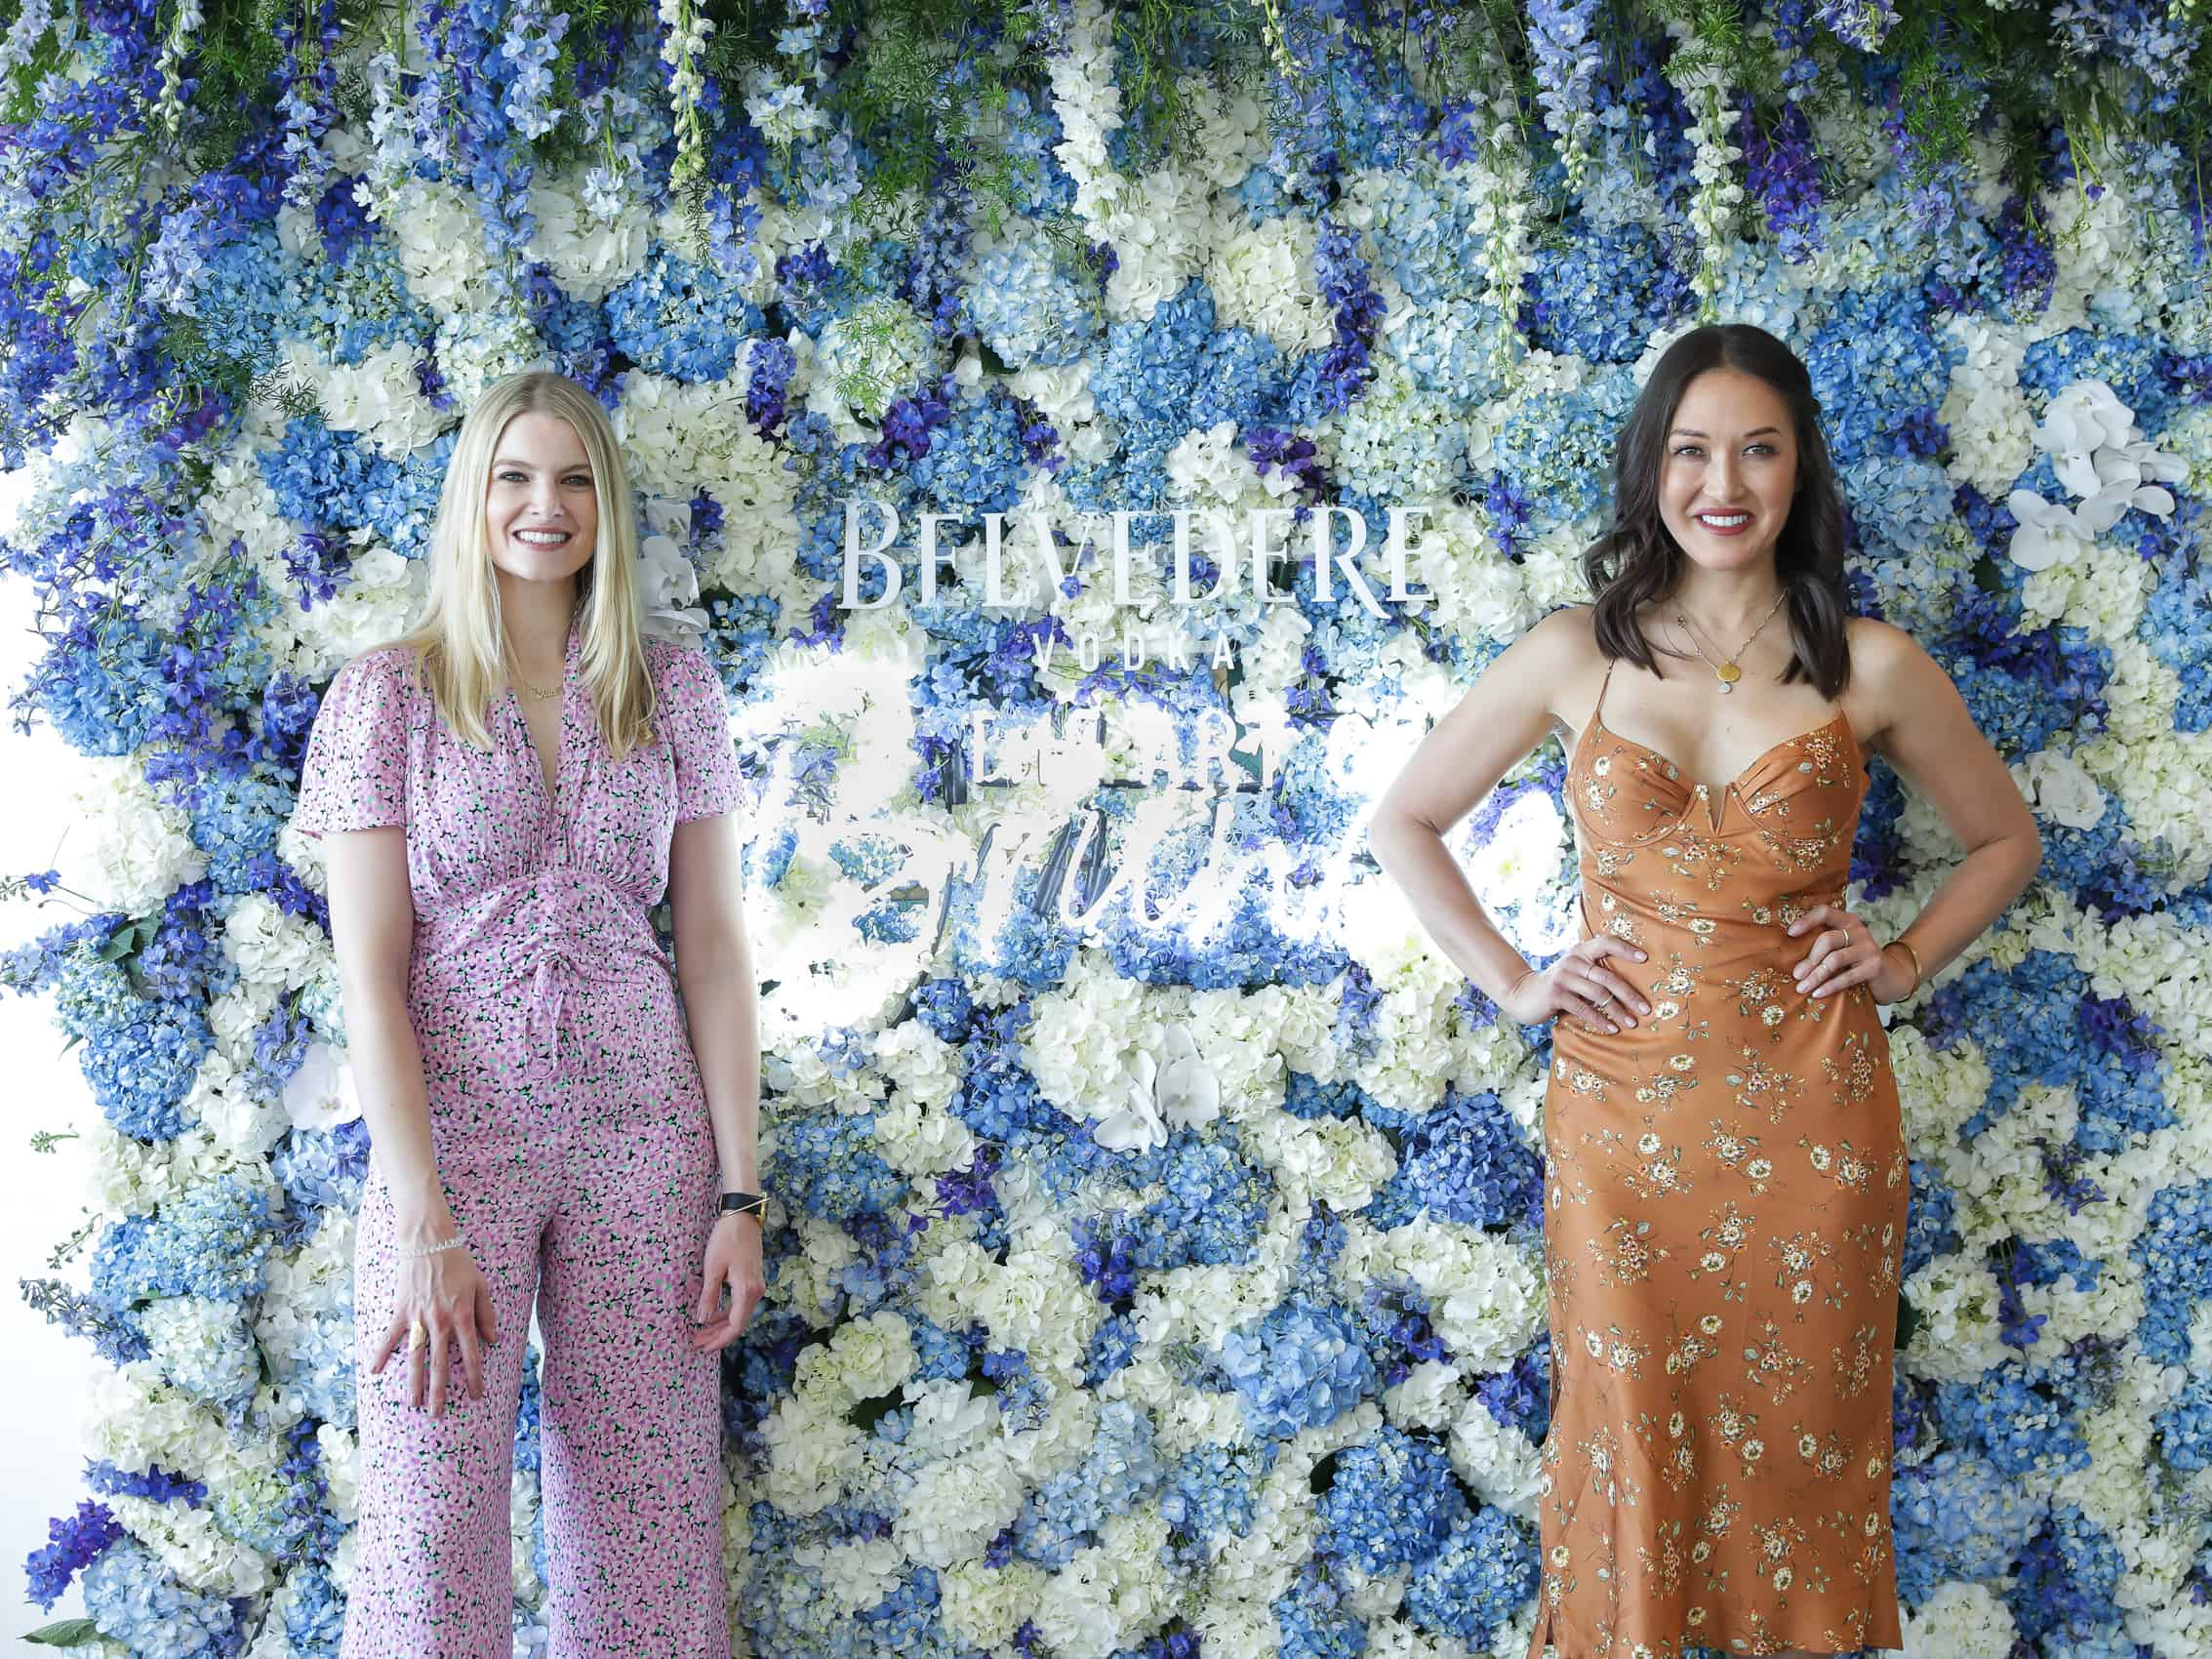 """Belvedere Vodka Hosts """"The Art of Brunch"""" — The Daily Front Row"""